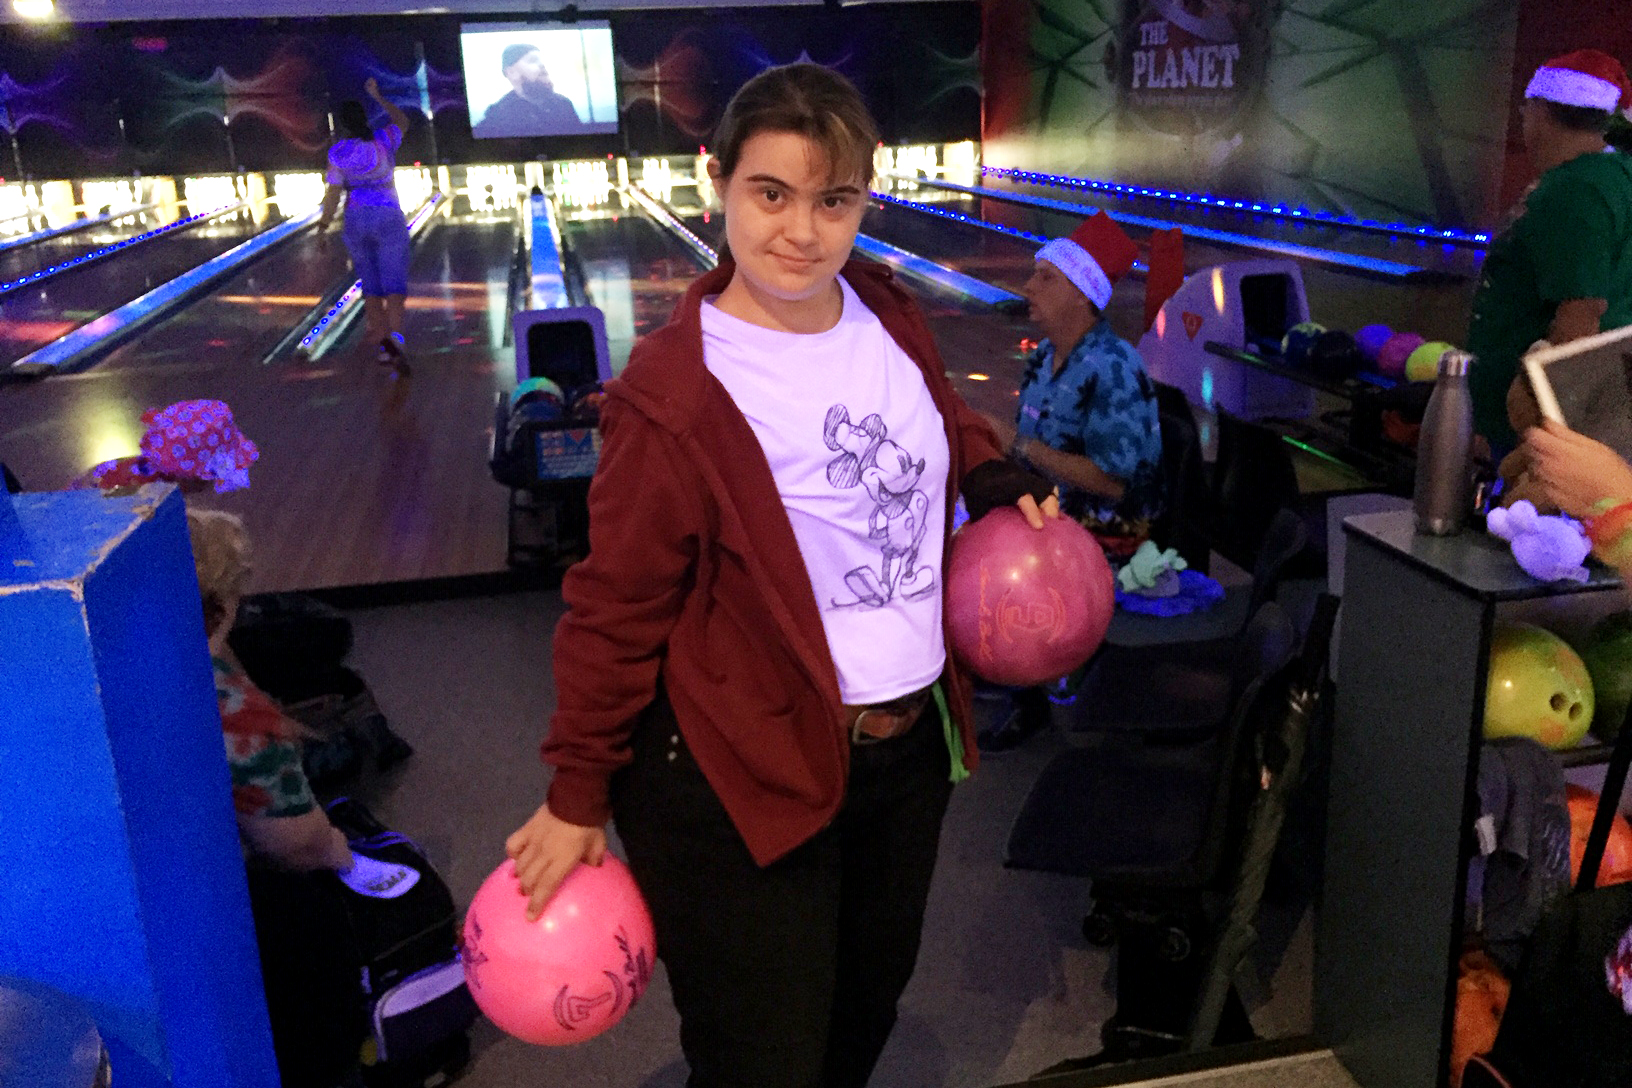 A woman with Down syndrome is in a bowling alley and holding two pink bowling balls.